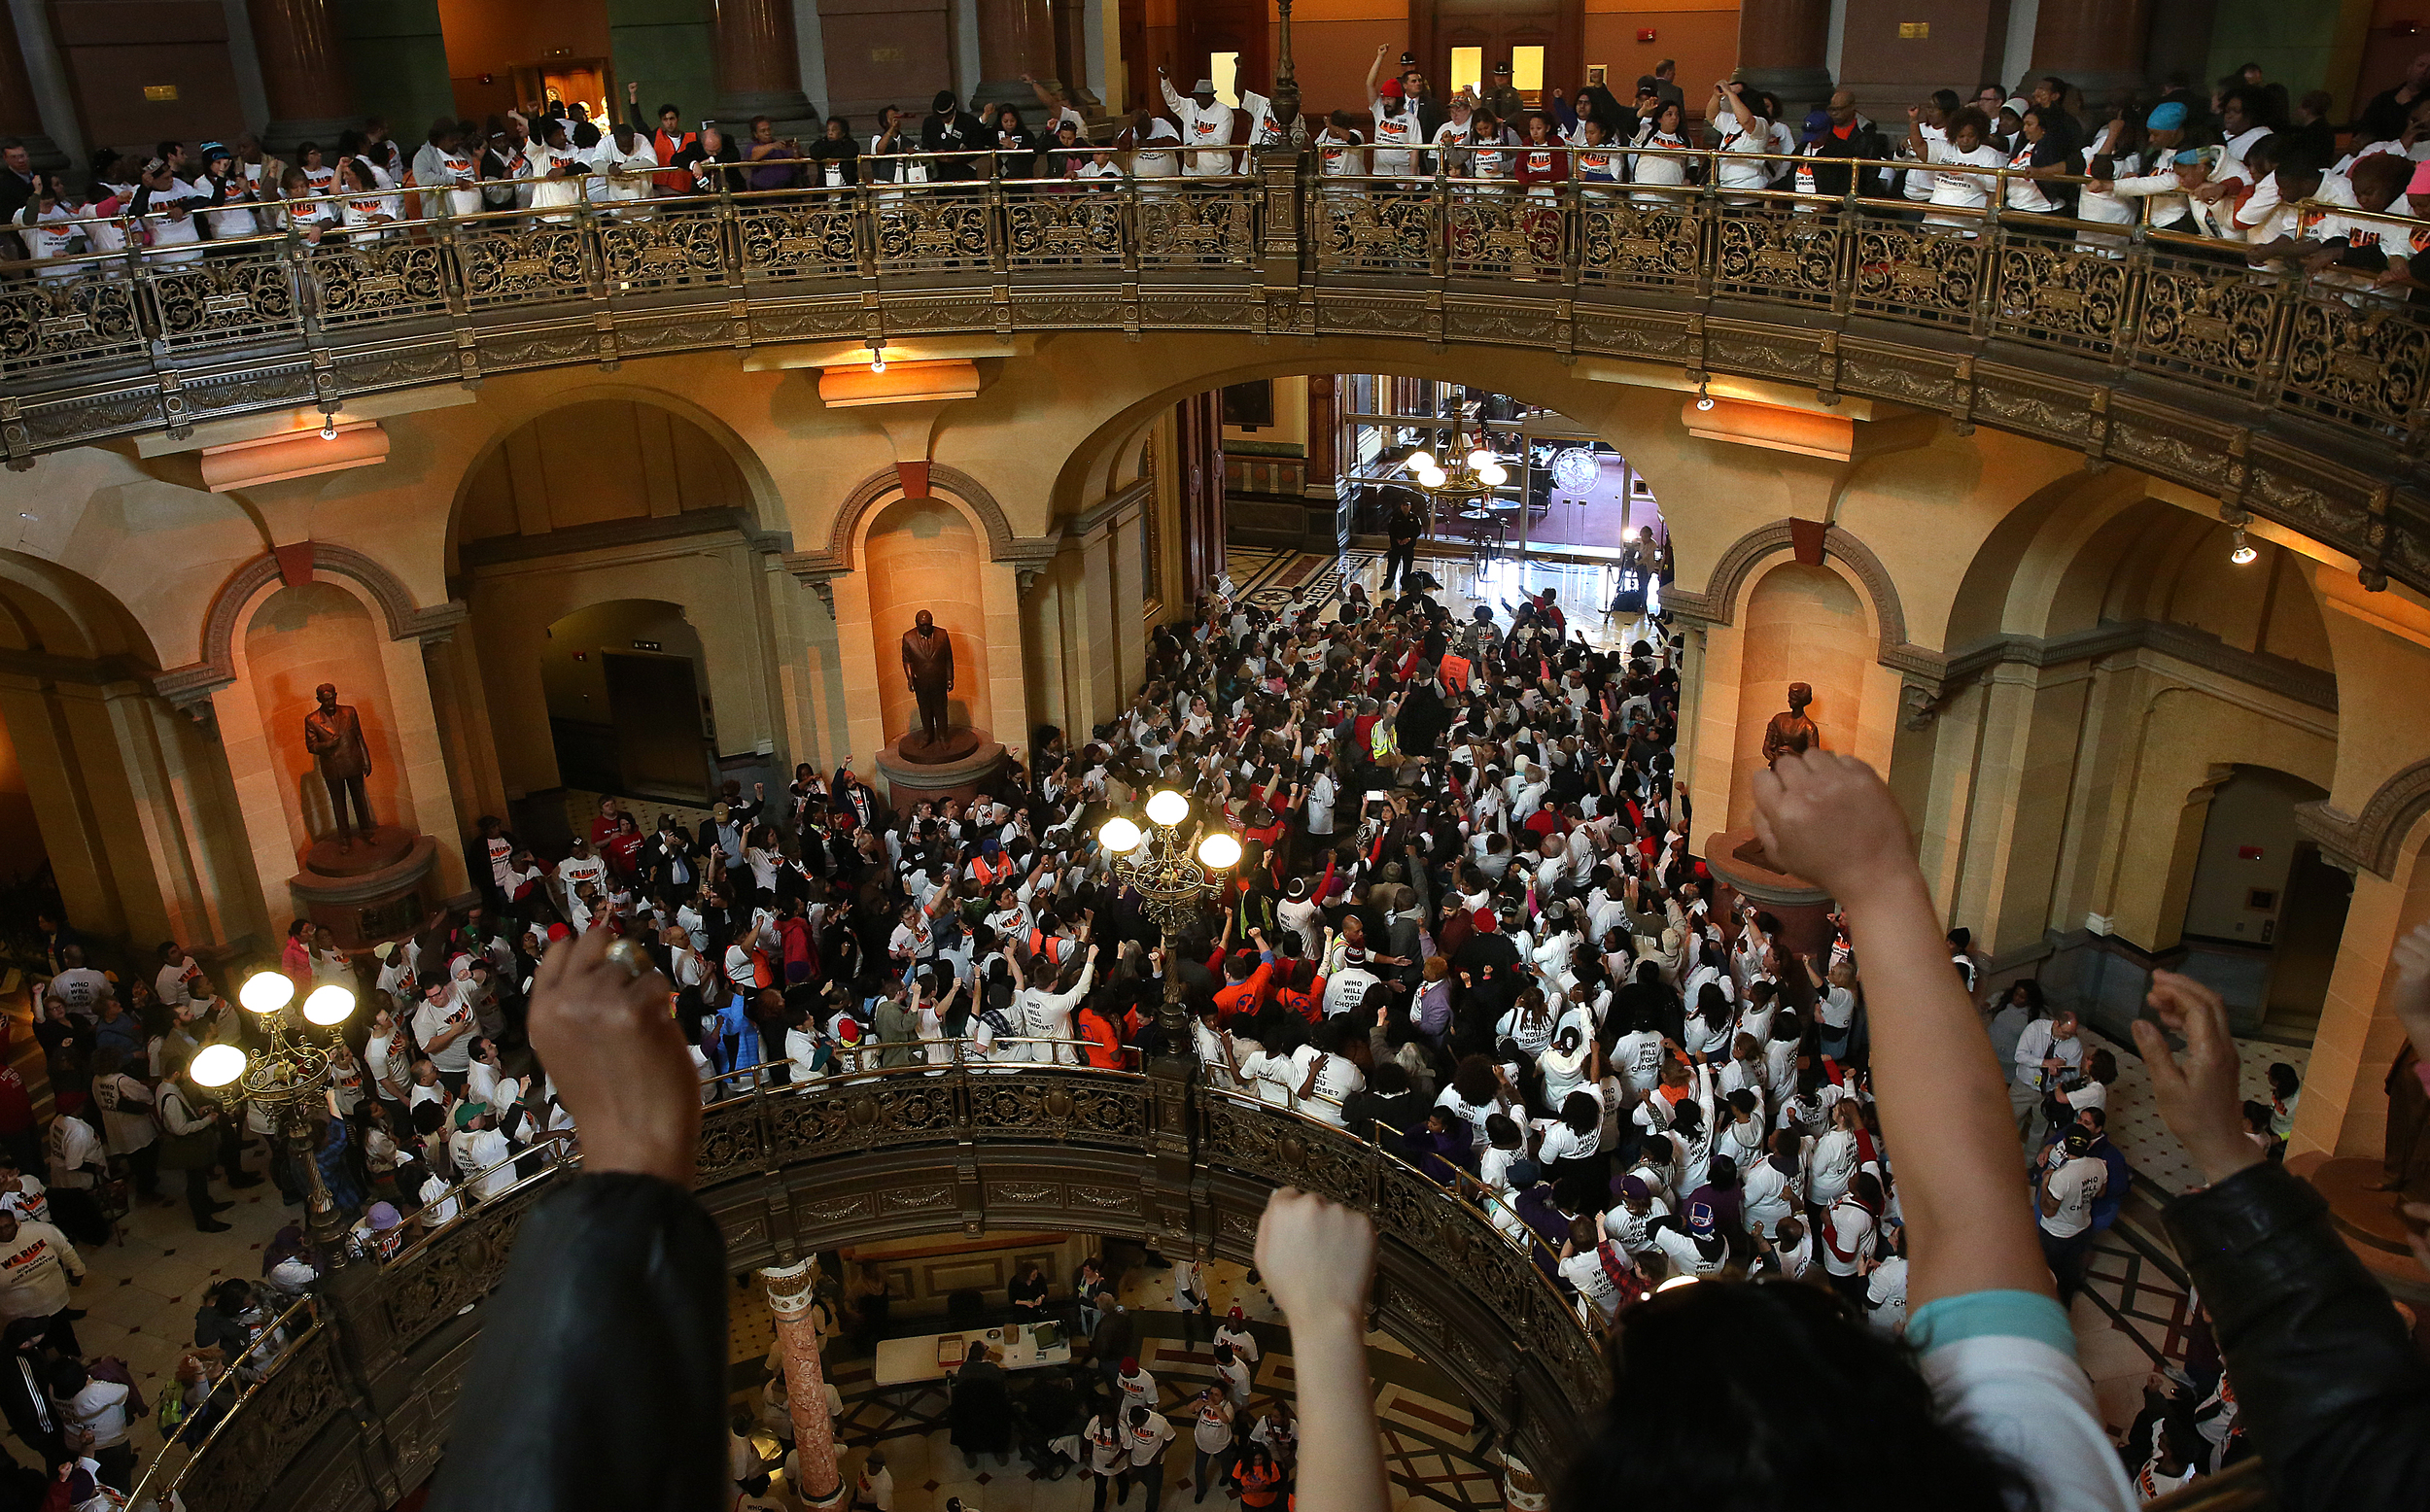 """Several thousand protestors packed the public areas and chanted against budget cuts inside the rotunda of the State Capitol building during the rally on Wed. March 11, 2015. As part of """"We Rise"""", a national day of action targeting state budget cuts, several thousand people from faith, community and labor organizations including adults, children and clergy affected by Gov. Bruce Rauner's proposed cuts gathered in Springfield to protest. The event began with a rally inside the Capitol building followed by a march to the governor's mansion where a mock """"funeral"""" for the """"99%"""" took place. David Spencer/The State Journal-Register"""